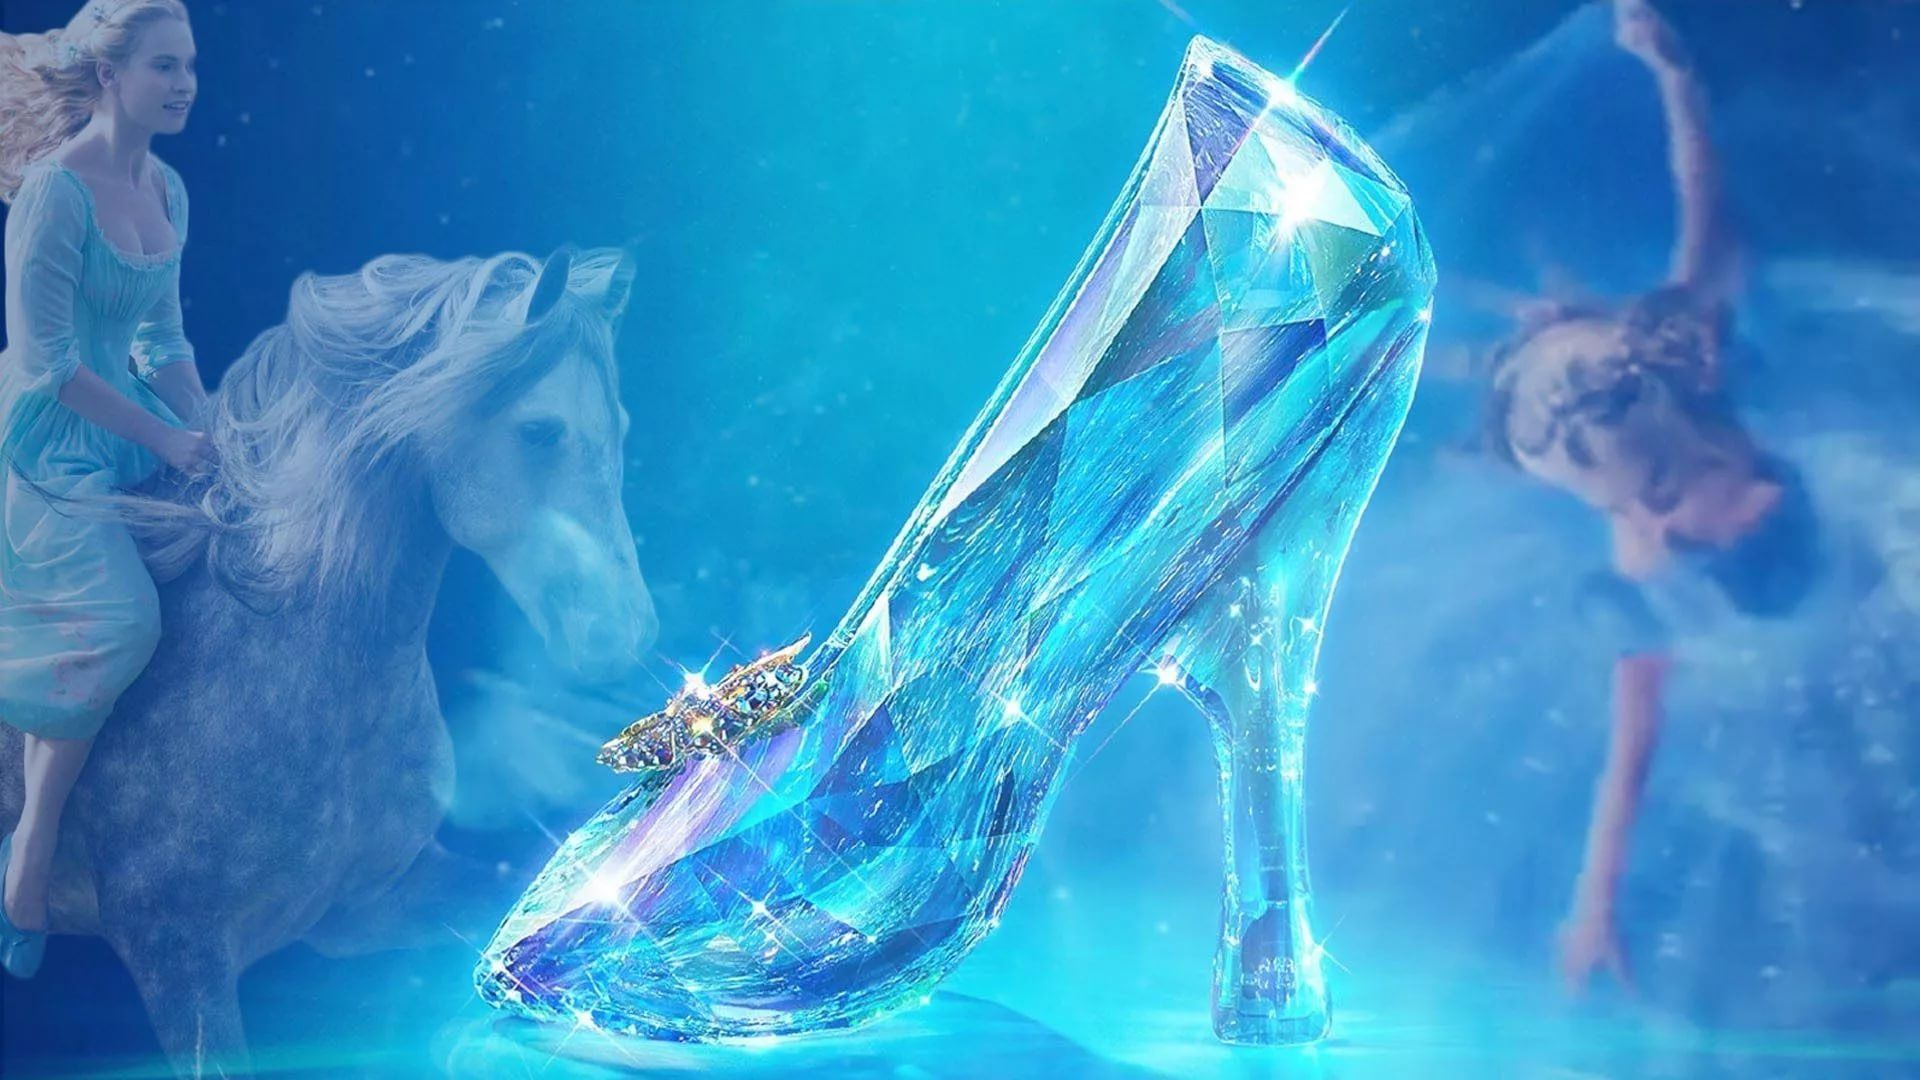 Cinderella good wallpaper